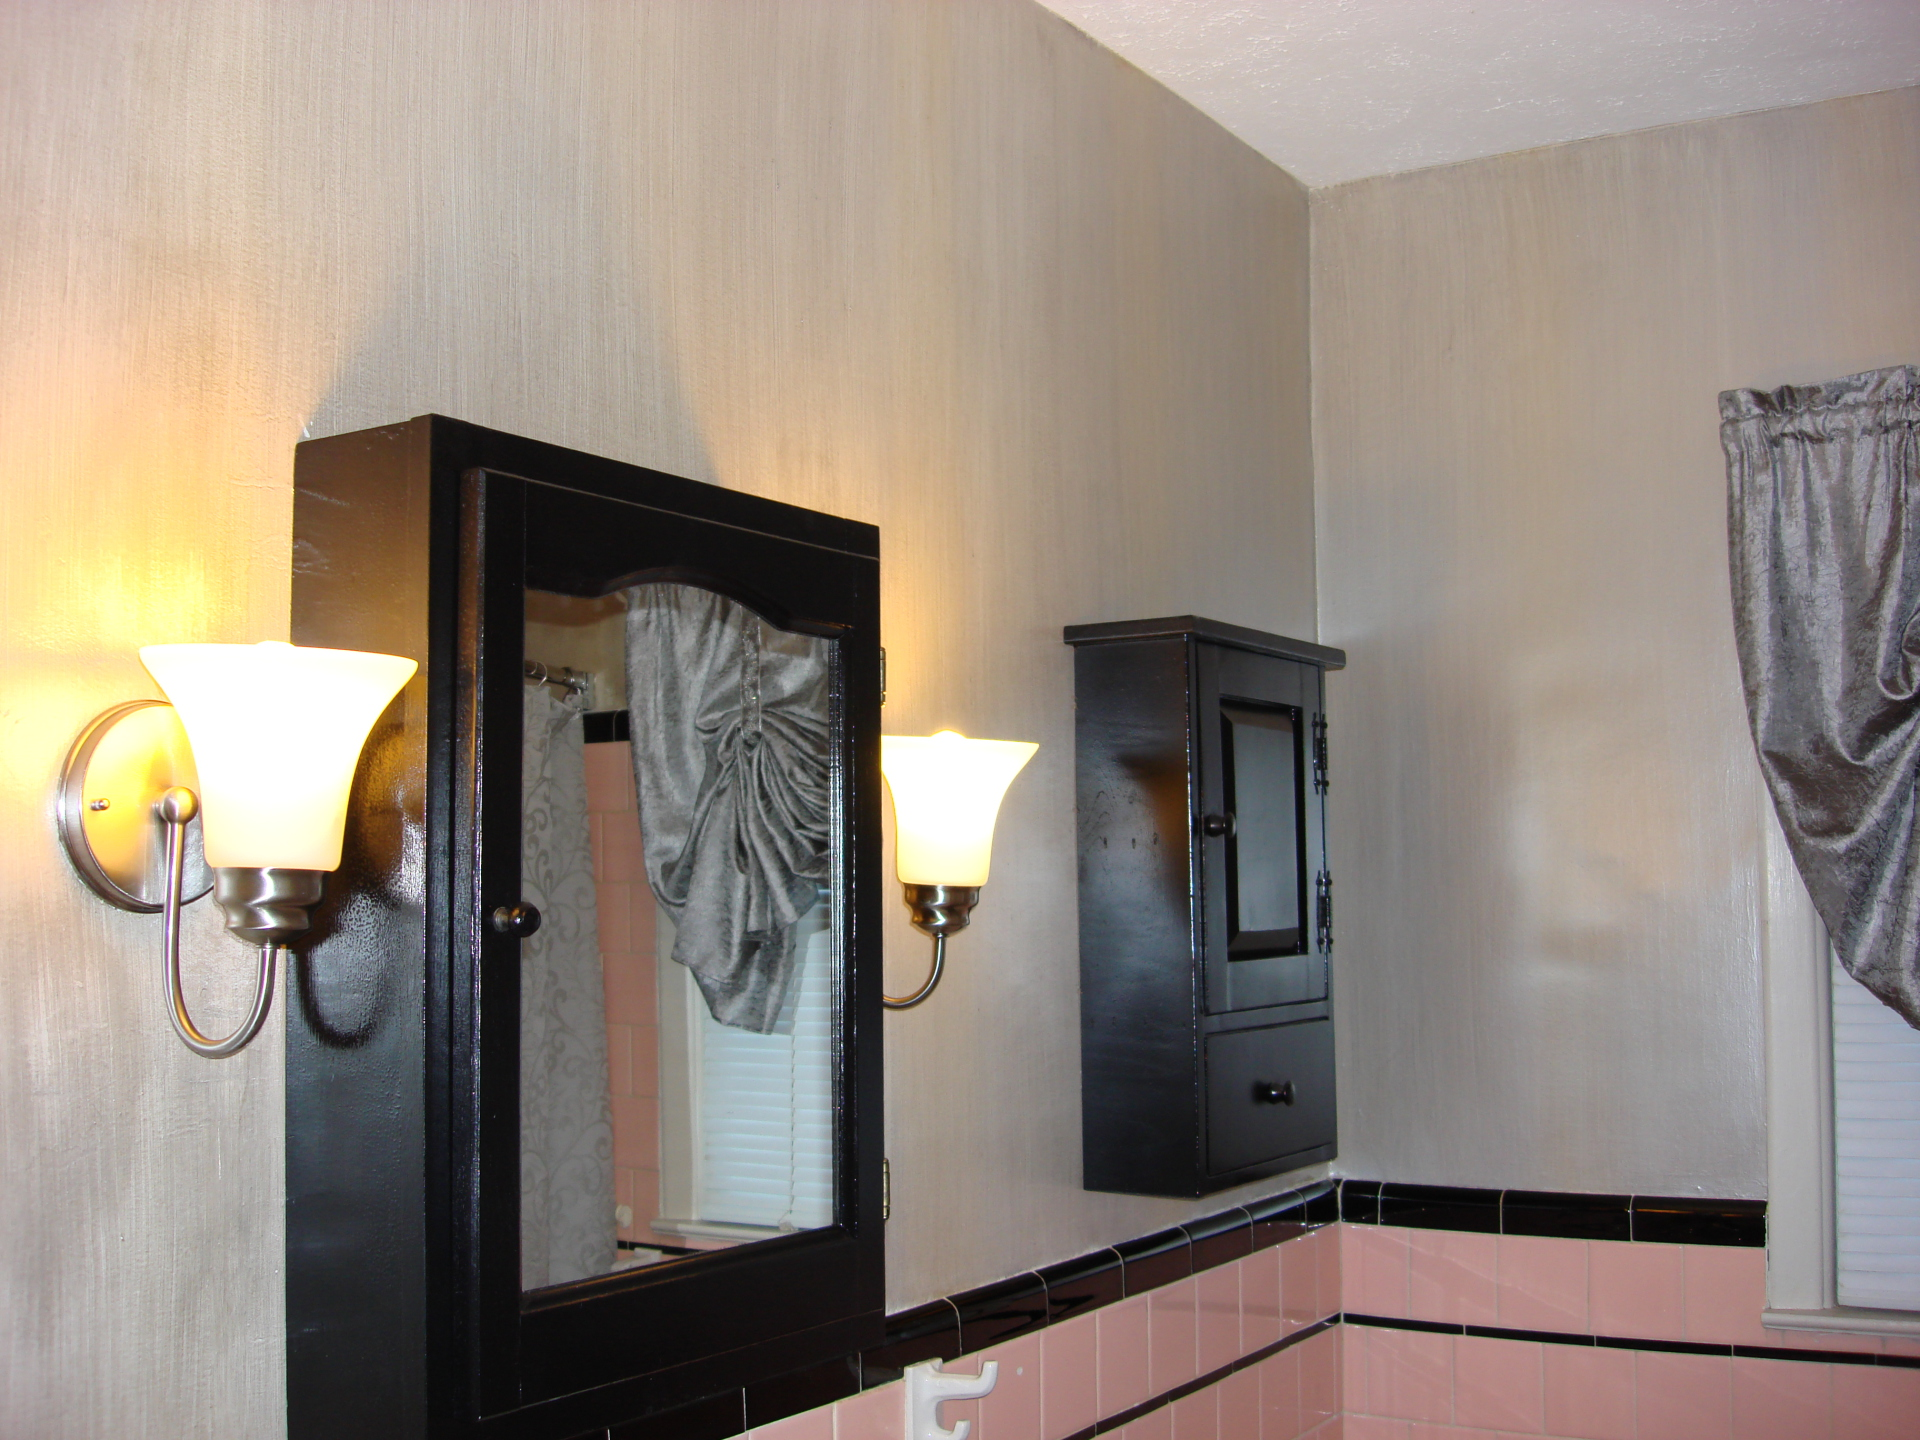 silver gold metallic strie 50's bathroom pink black tile danville  faux finish decorative paint raleigh